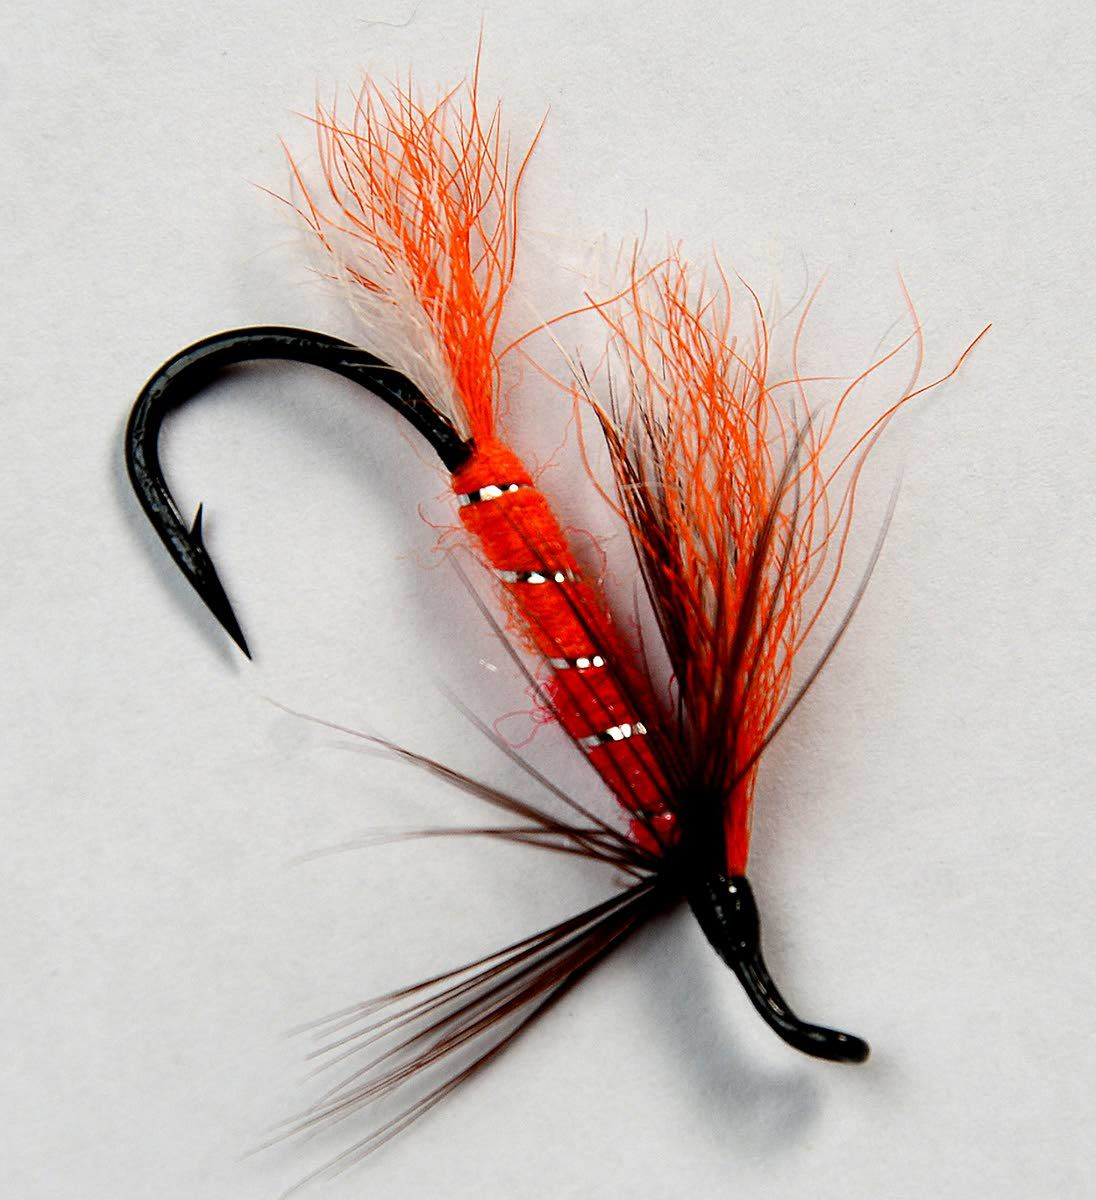 Brad's Brat: This is the gem that lured me to fly fishing